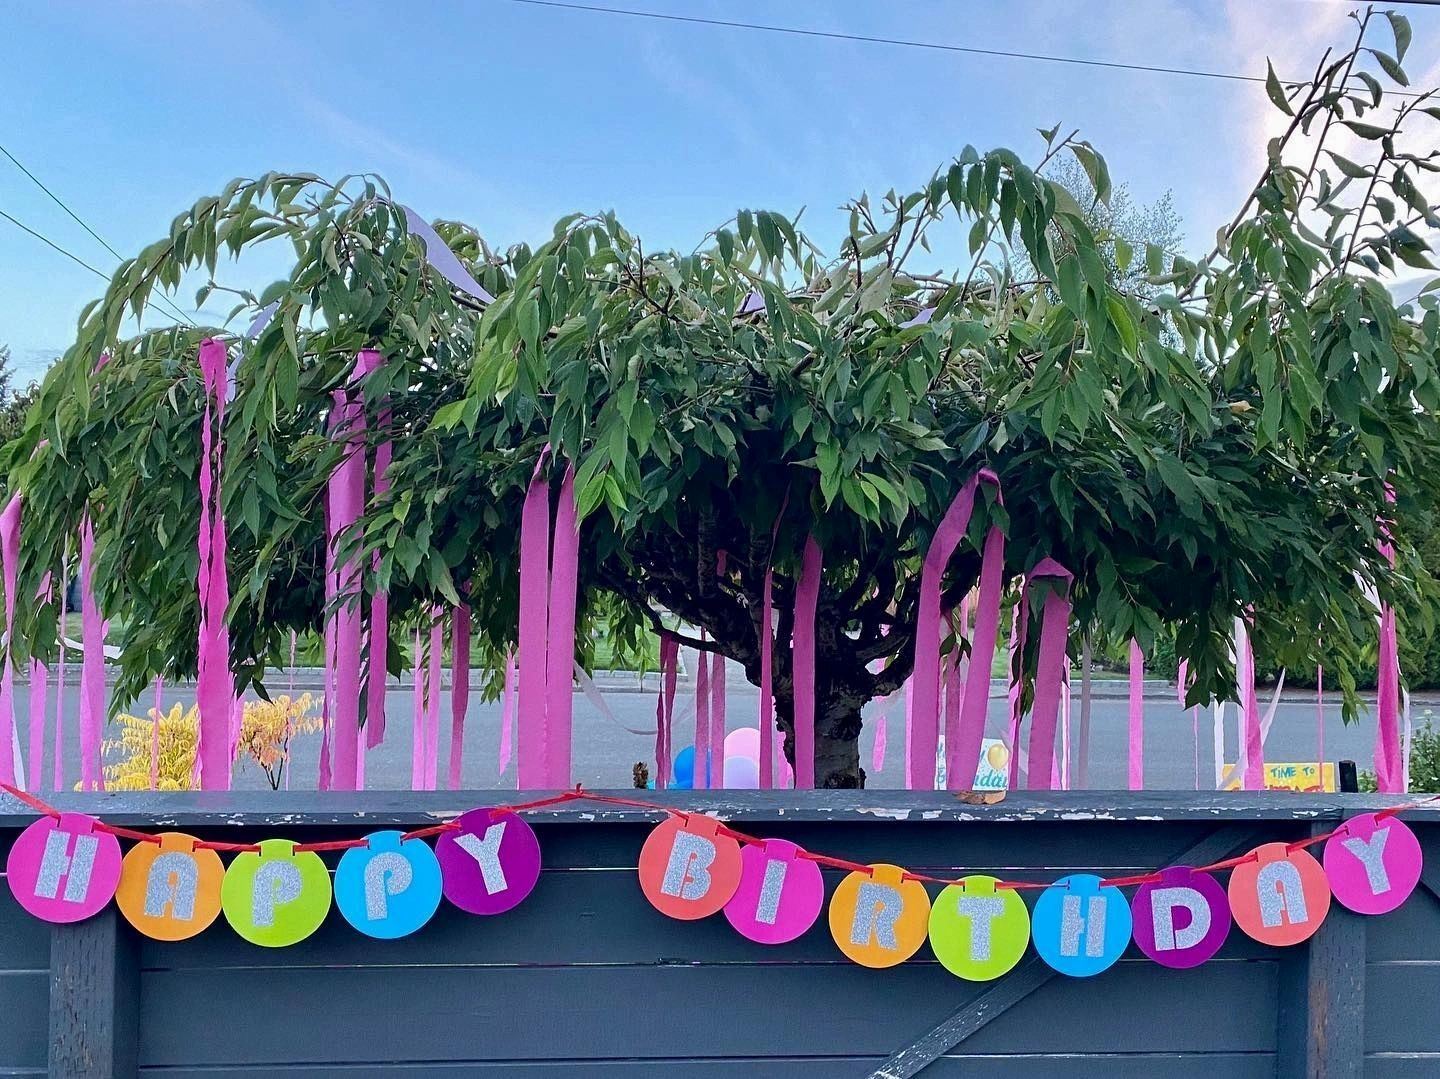 It's a Birthday Yard sign with balloons